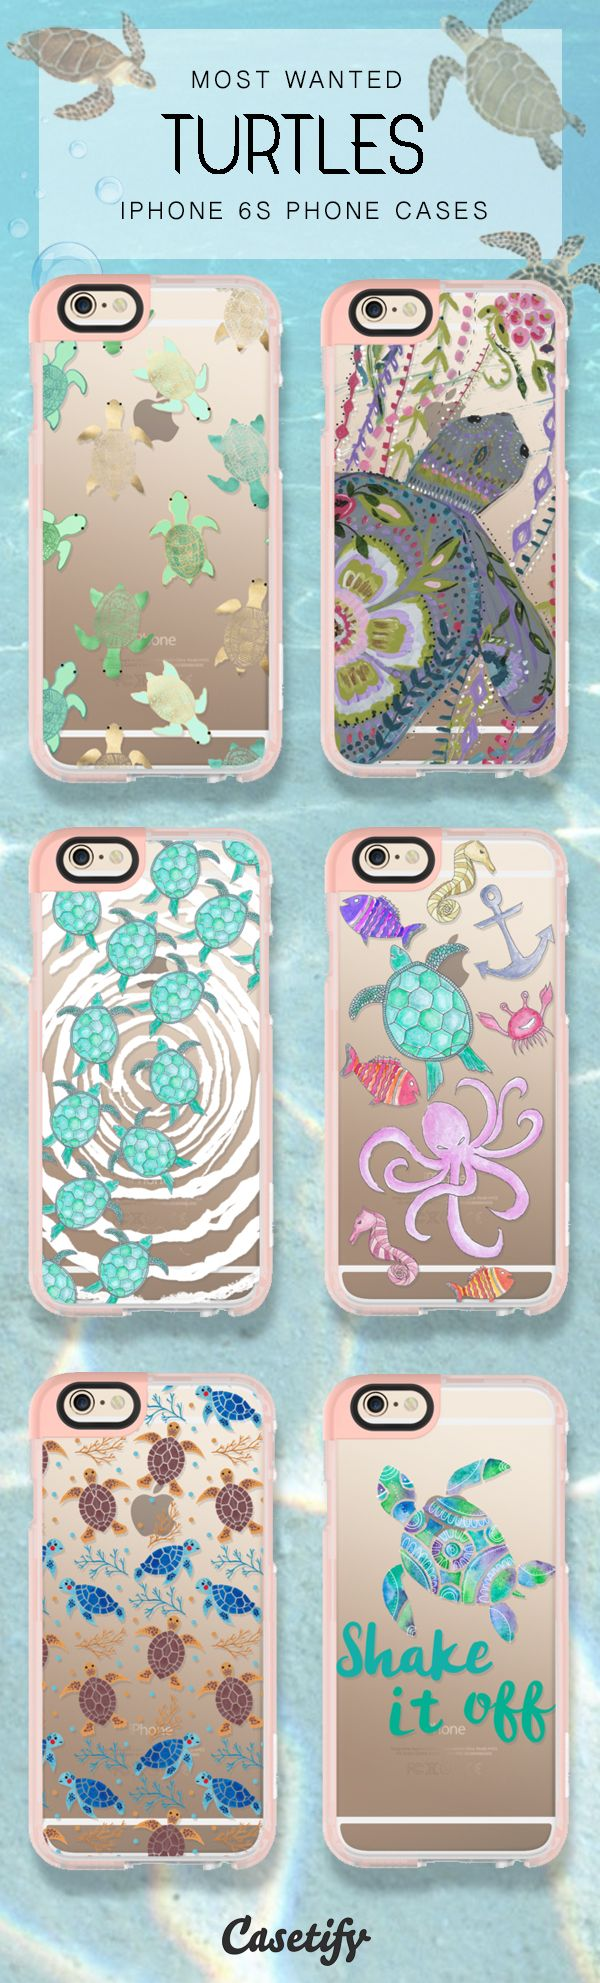 For the love of turtles! Shop these iPhone 6S phone cases here >>> https://www.casetify.com/artworks/6qGZxVIj3n